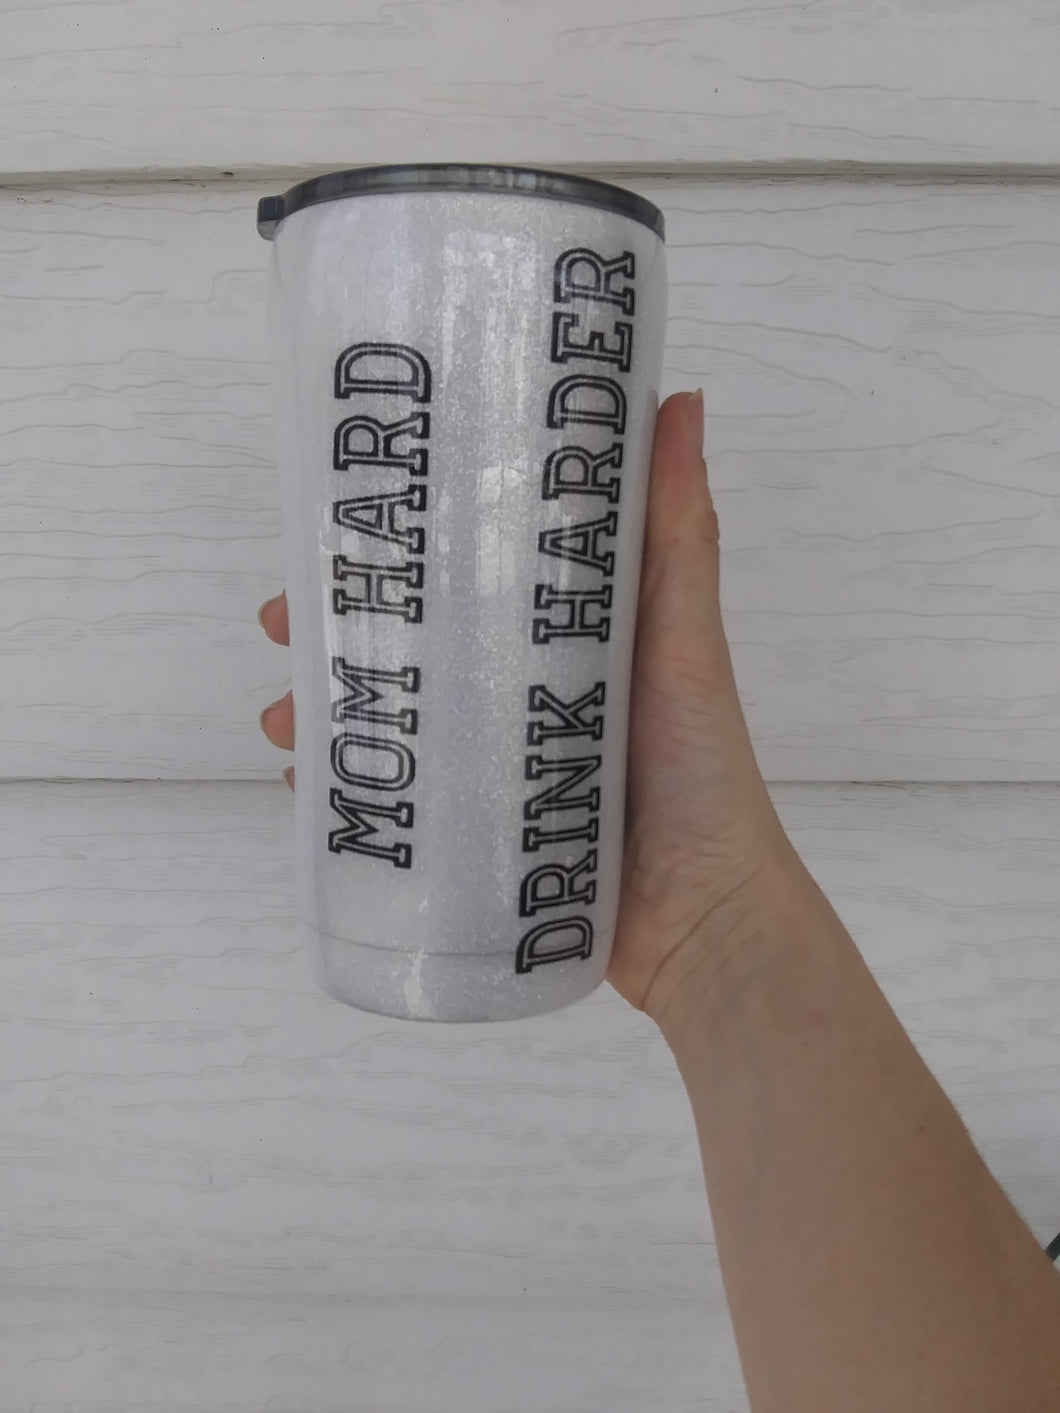 Mom hard, drink harder tumbler